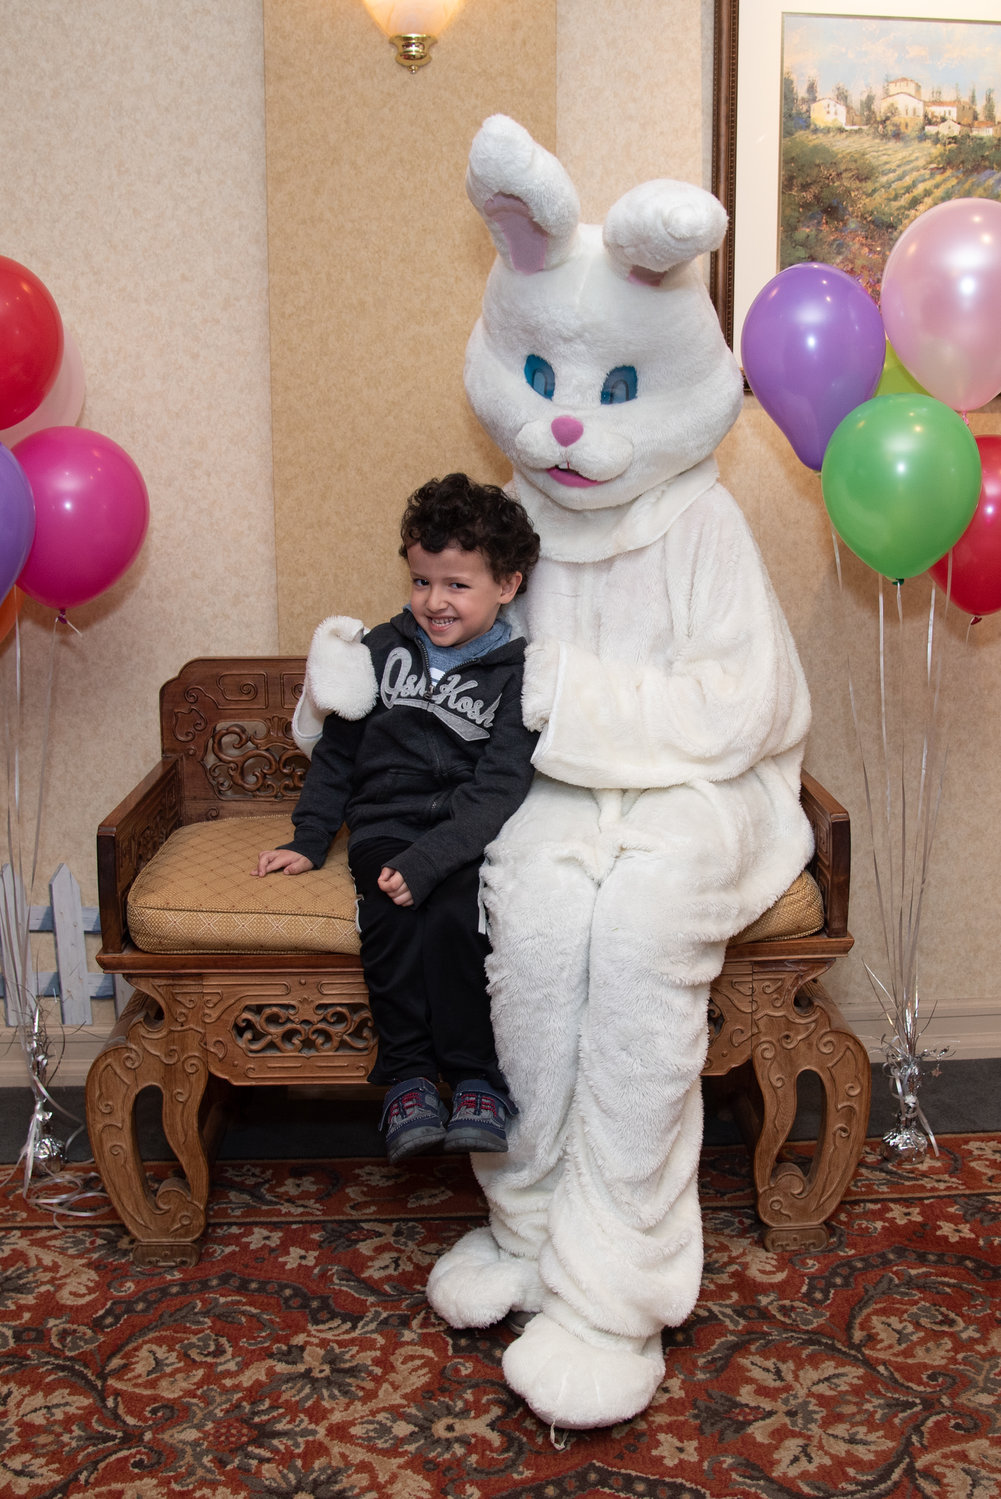 Enrico Gonzales, 4, made a new friend at the Regency — the Easter Bunny.